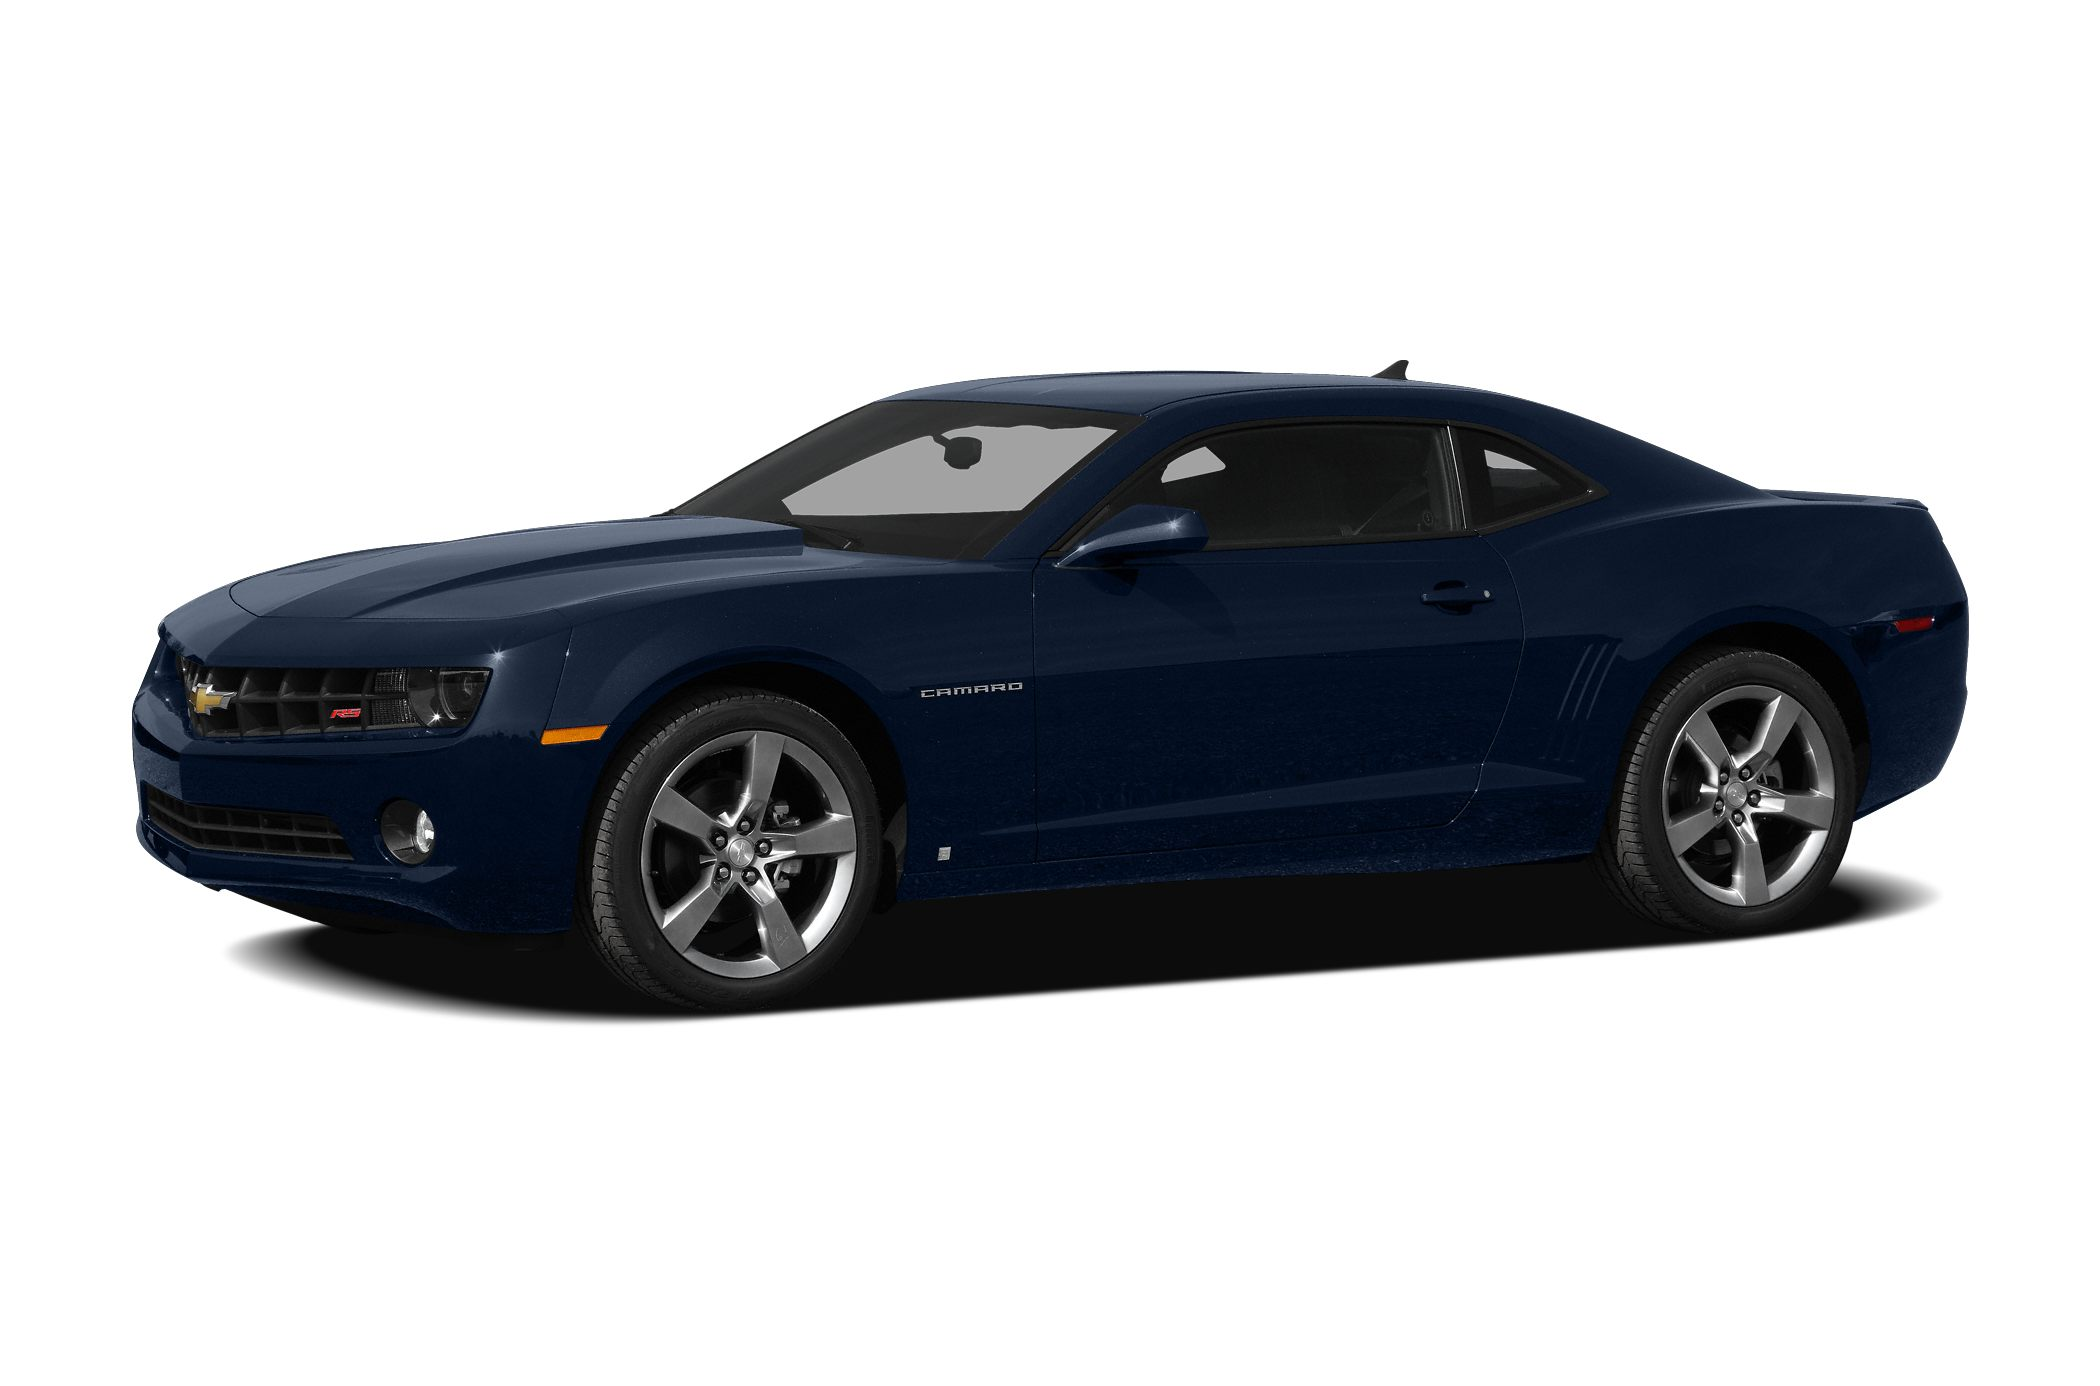 2010 Chevrolet Camaro LT A ONE OWNER LOCAL TRADE-IN WITH LOW MILES This locally owned Vehicle was